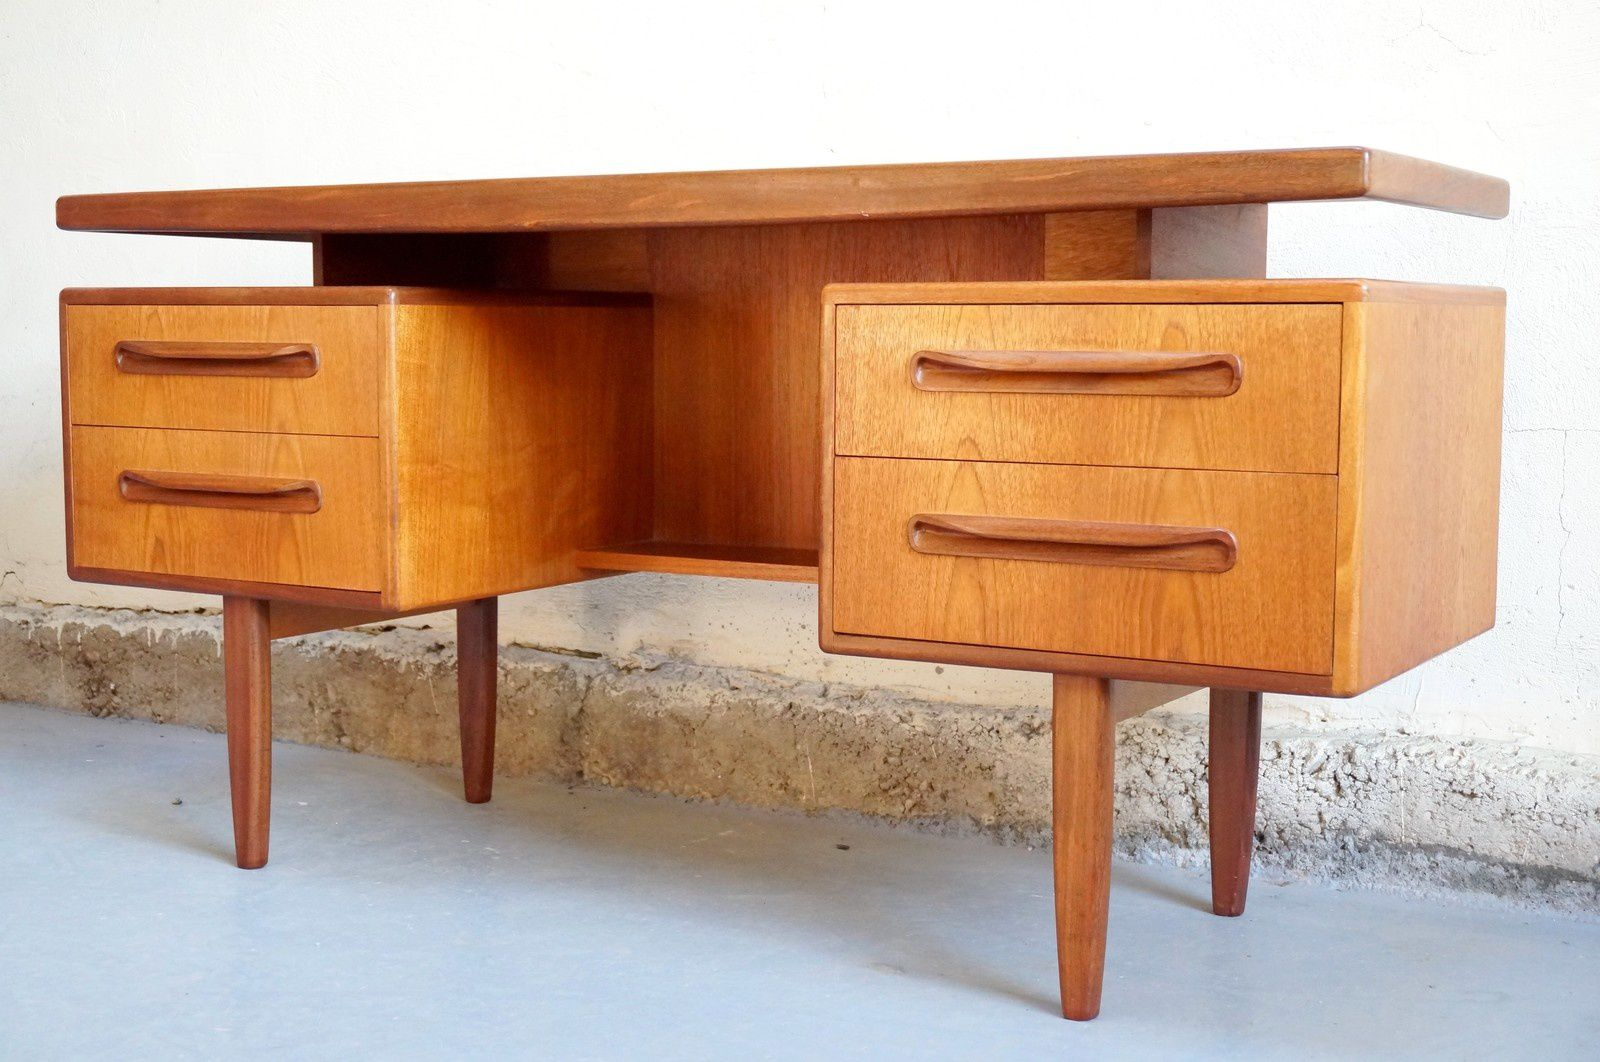 Vendu bureau scandinave g plan design ann es 60 vintage for Bureau scandinave